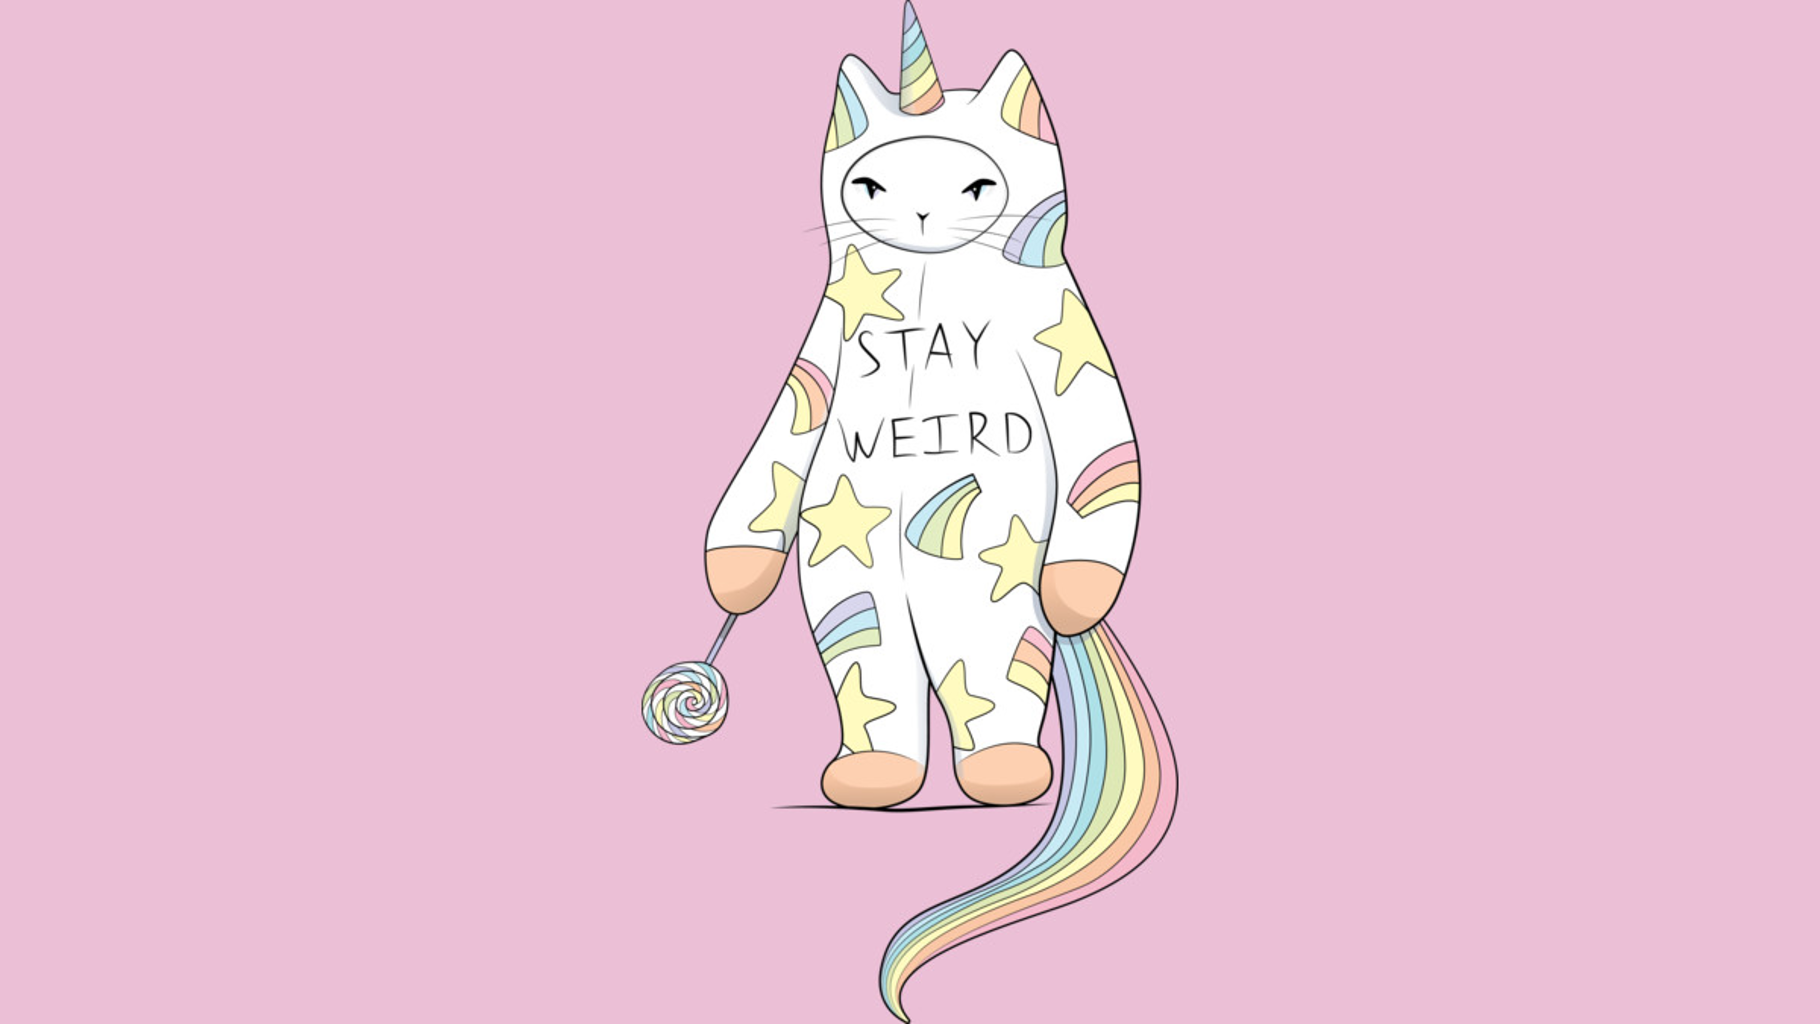 Design by Humans: Stay Weird! With Love From Unicorn Cat